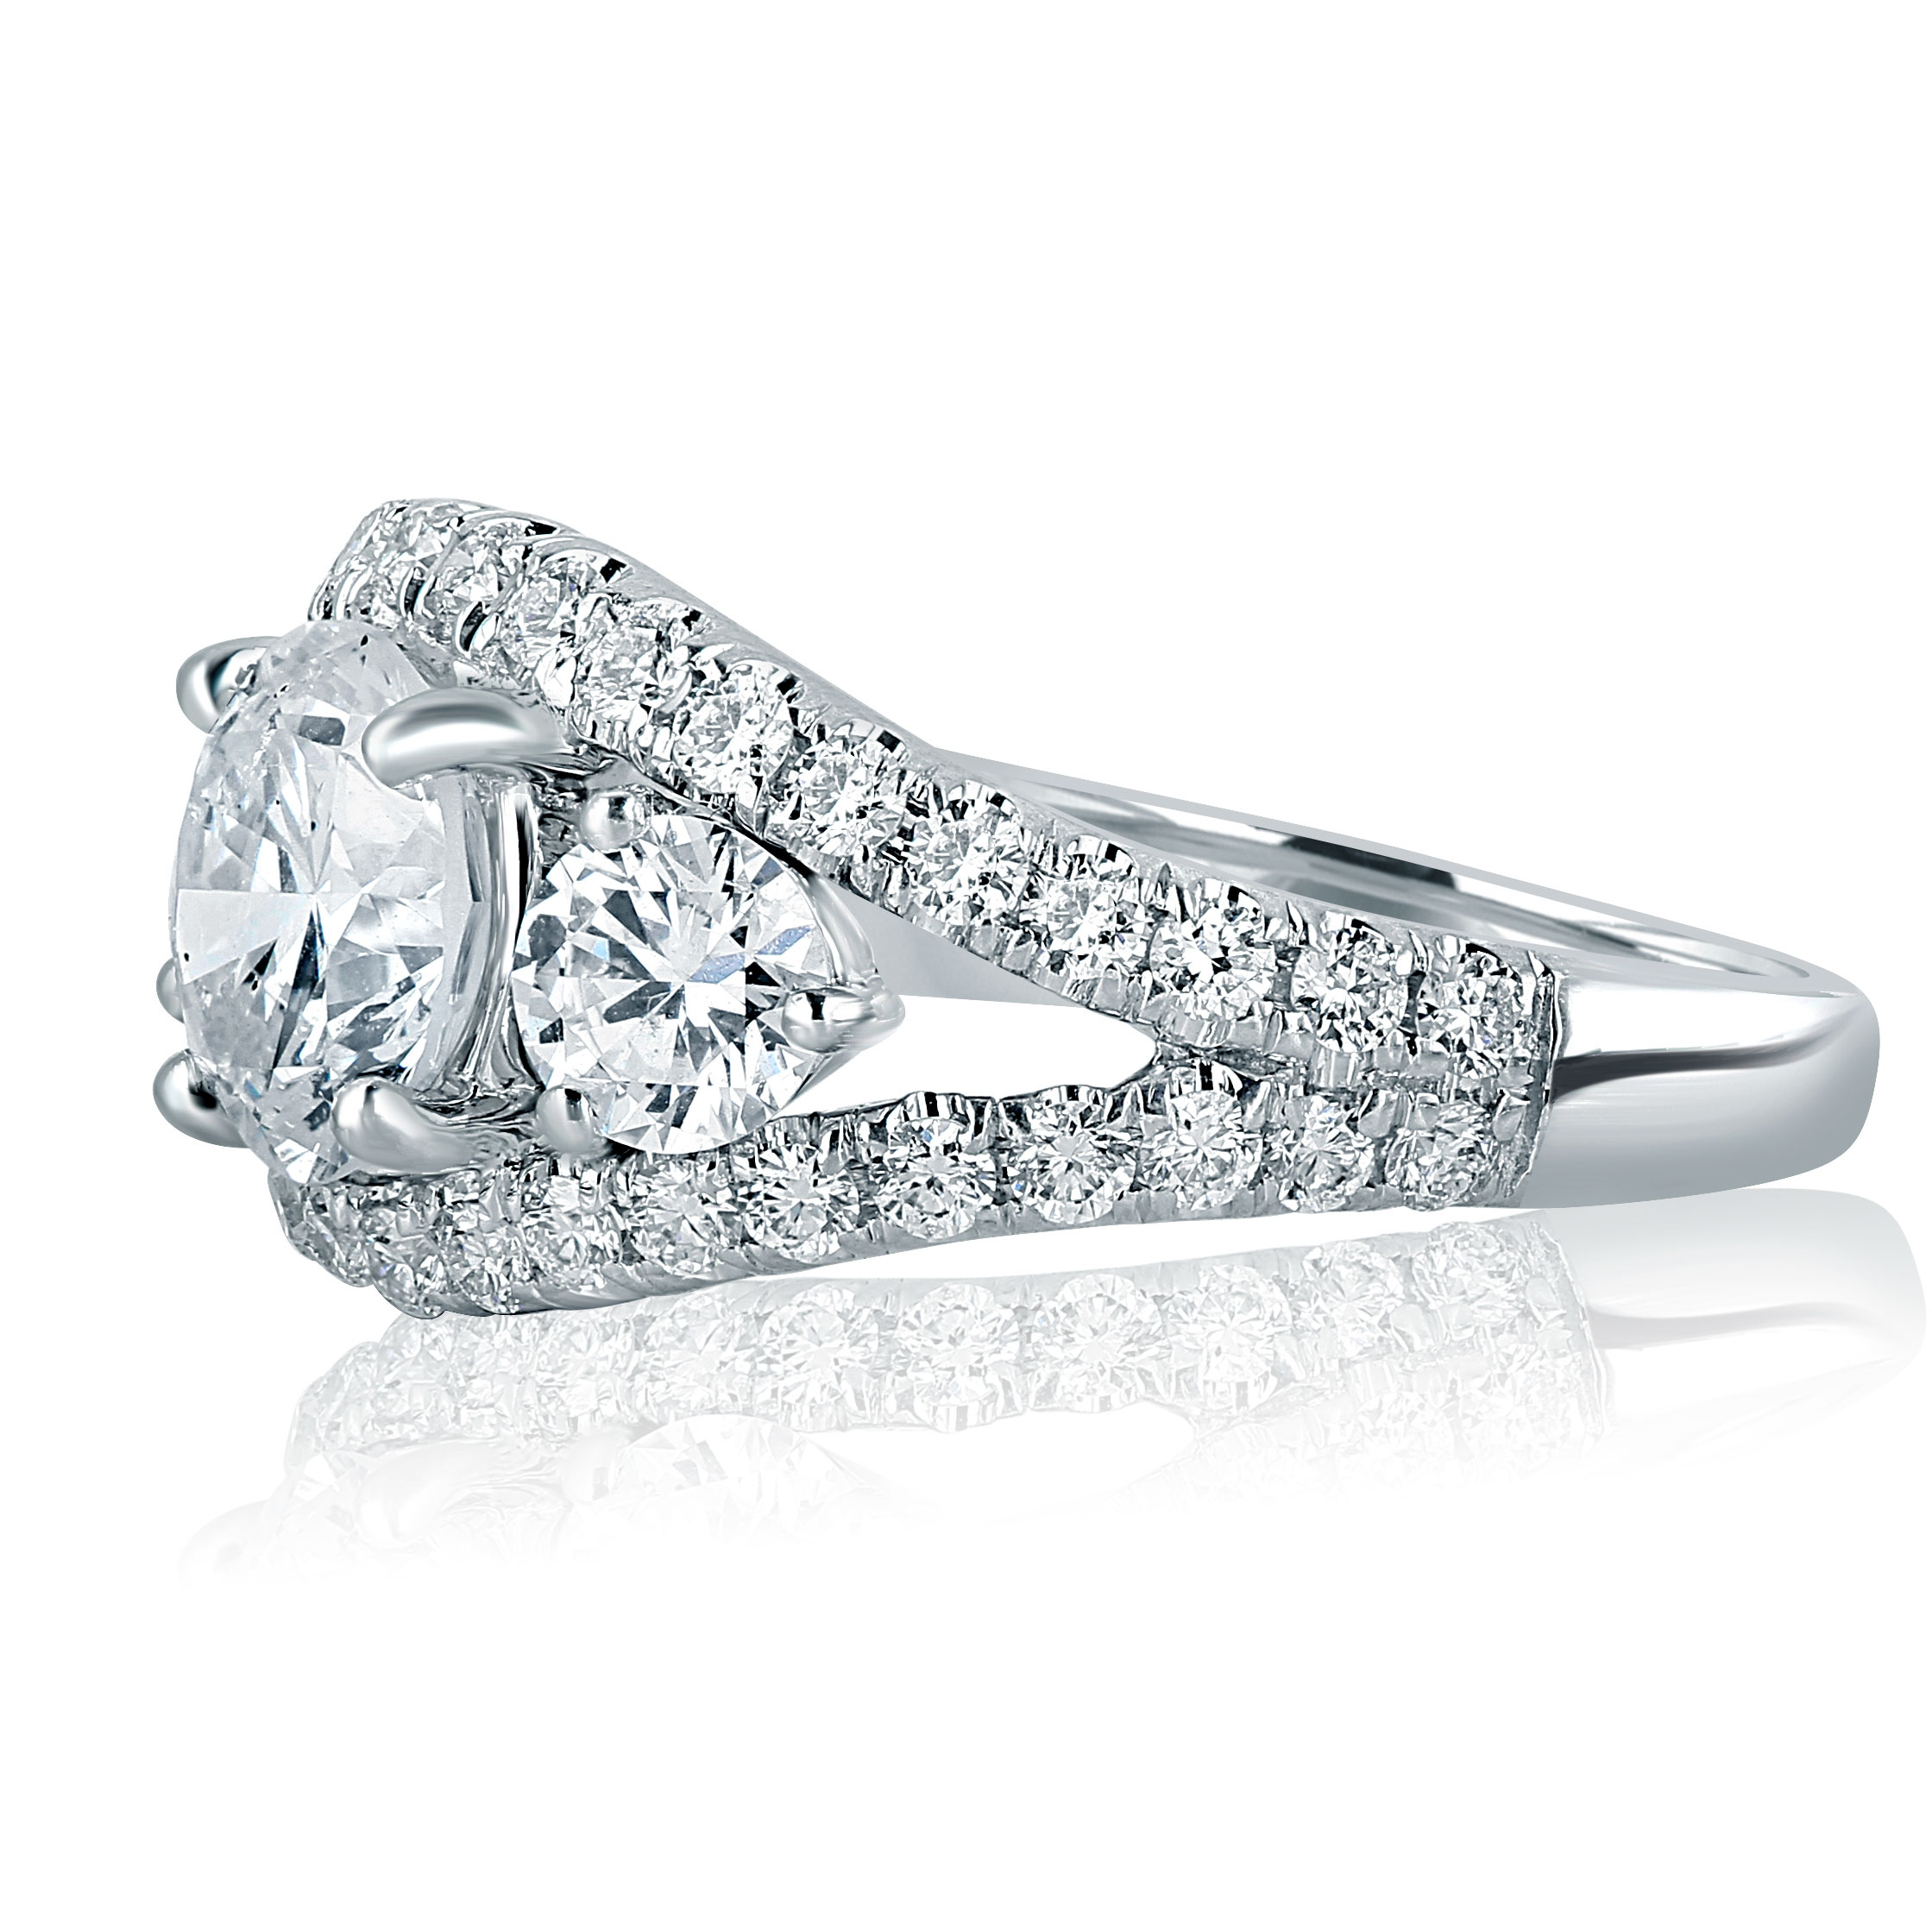 1.50 CT Marquis-Coupe magnifique solitaire Bridal Ring Set 14K Or Blanc Finition